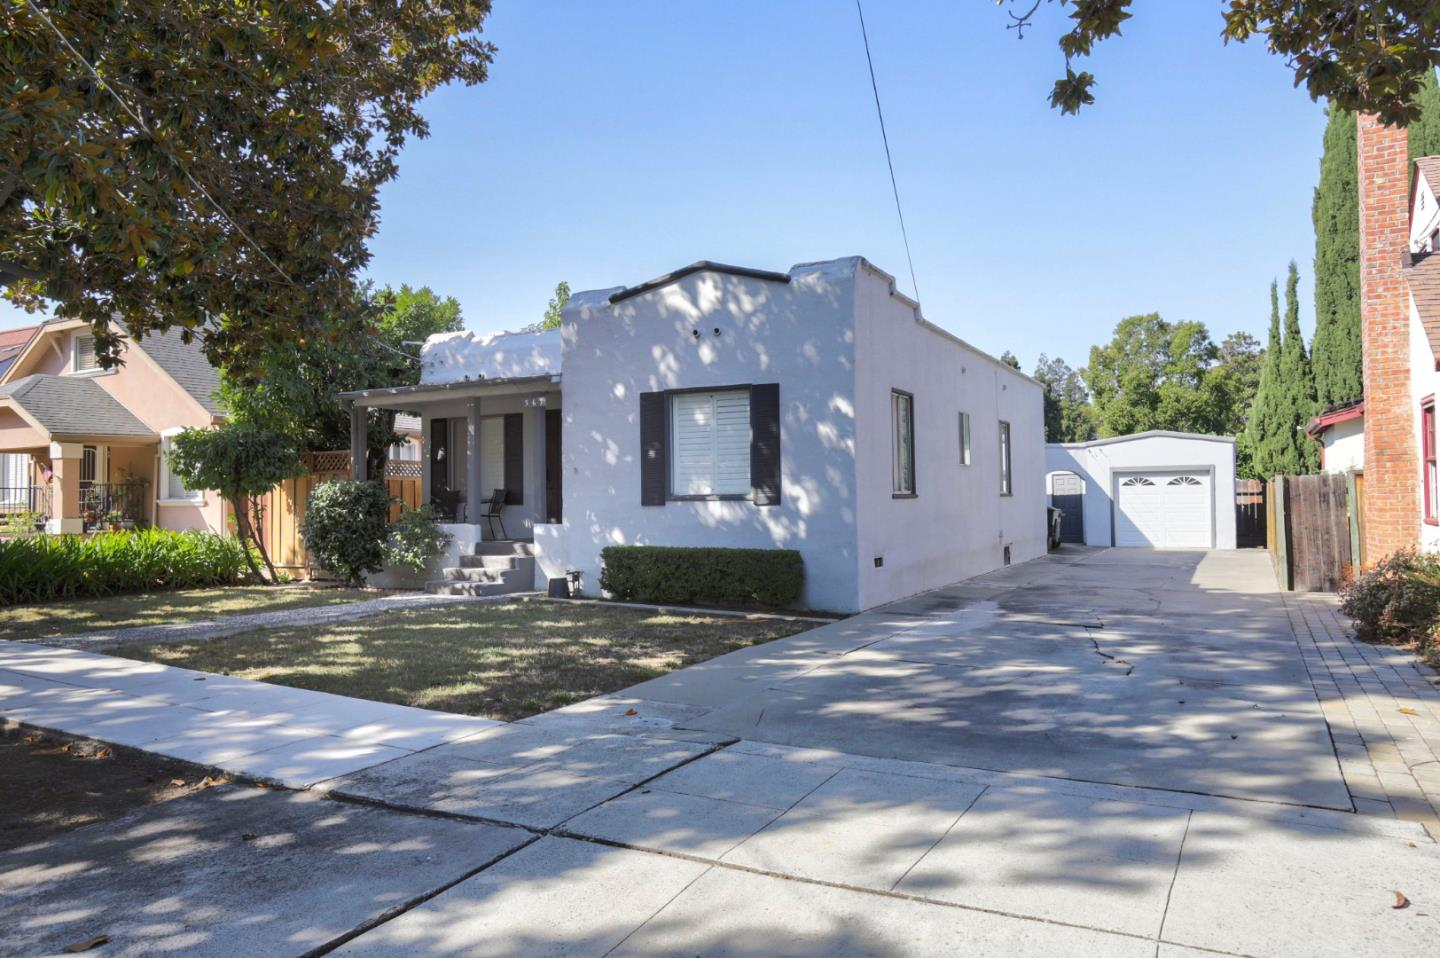 Detail Gallery Image 1 of 13 For 567 S Taaffe St, Sunnyvale, CA 94086 - 3 Beds   2 Baths